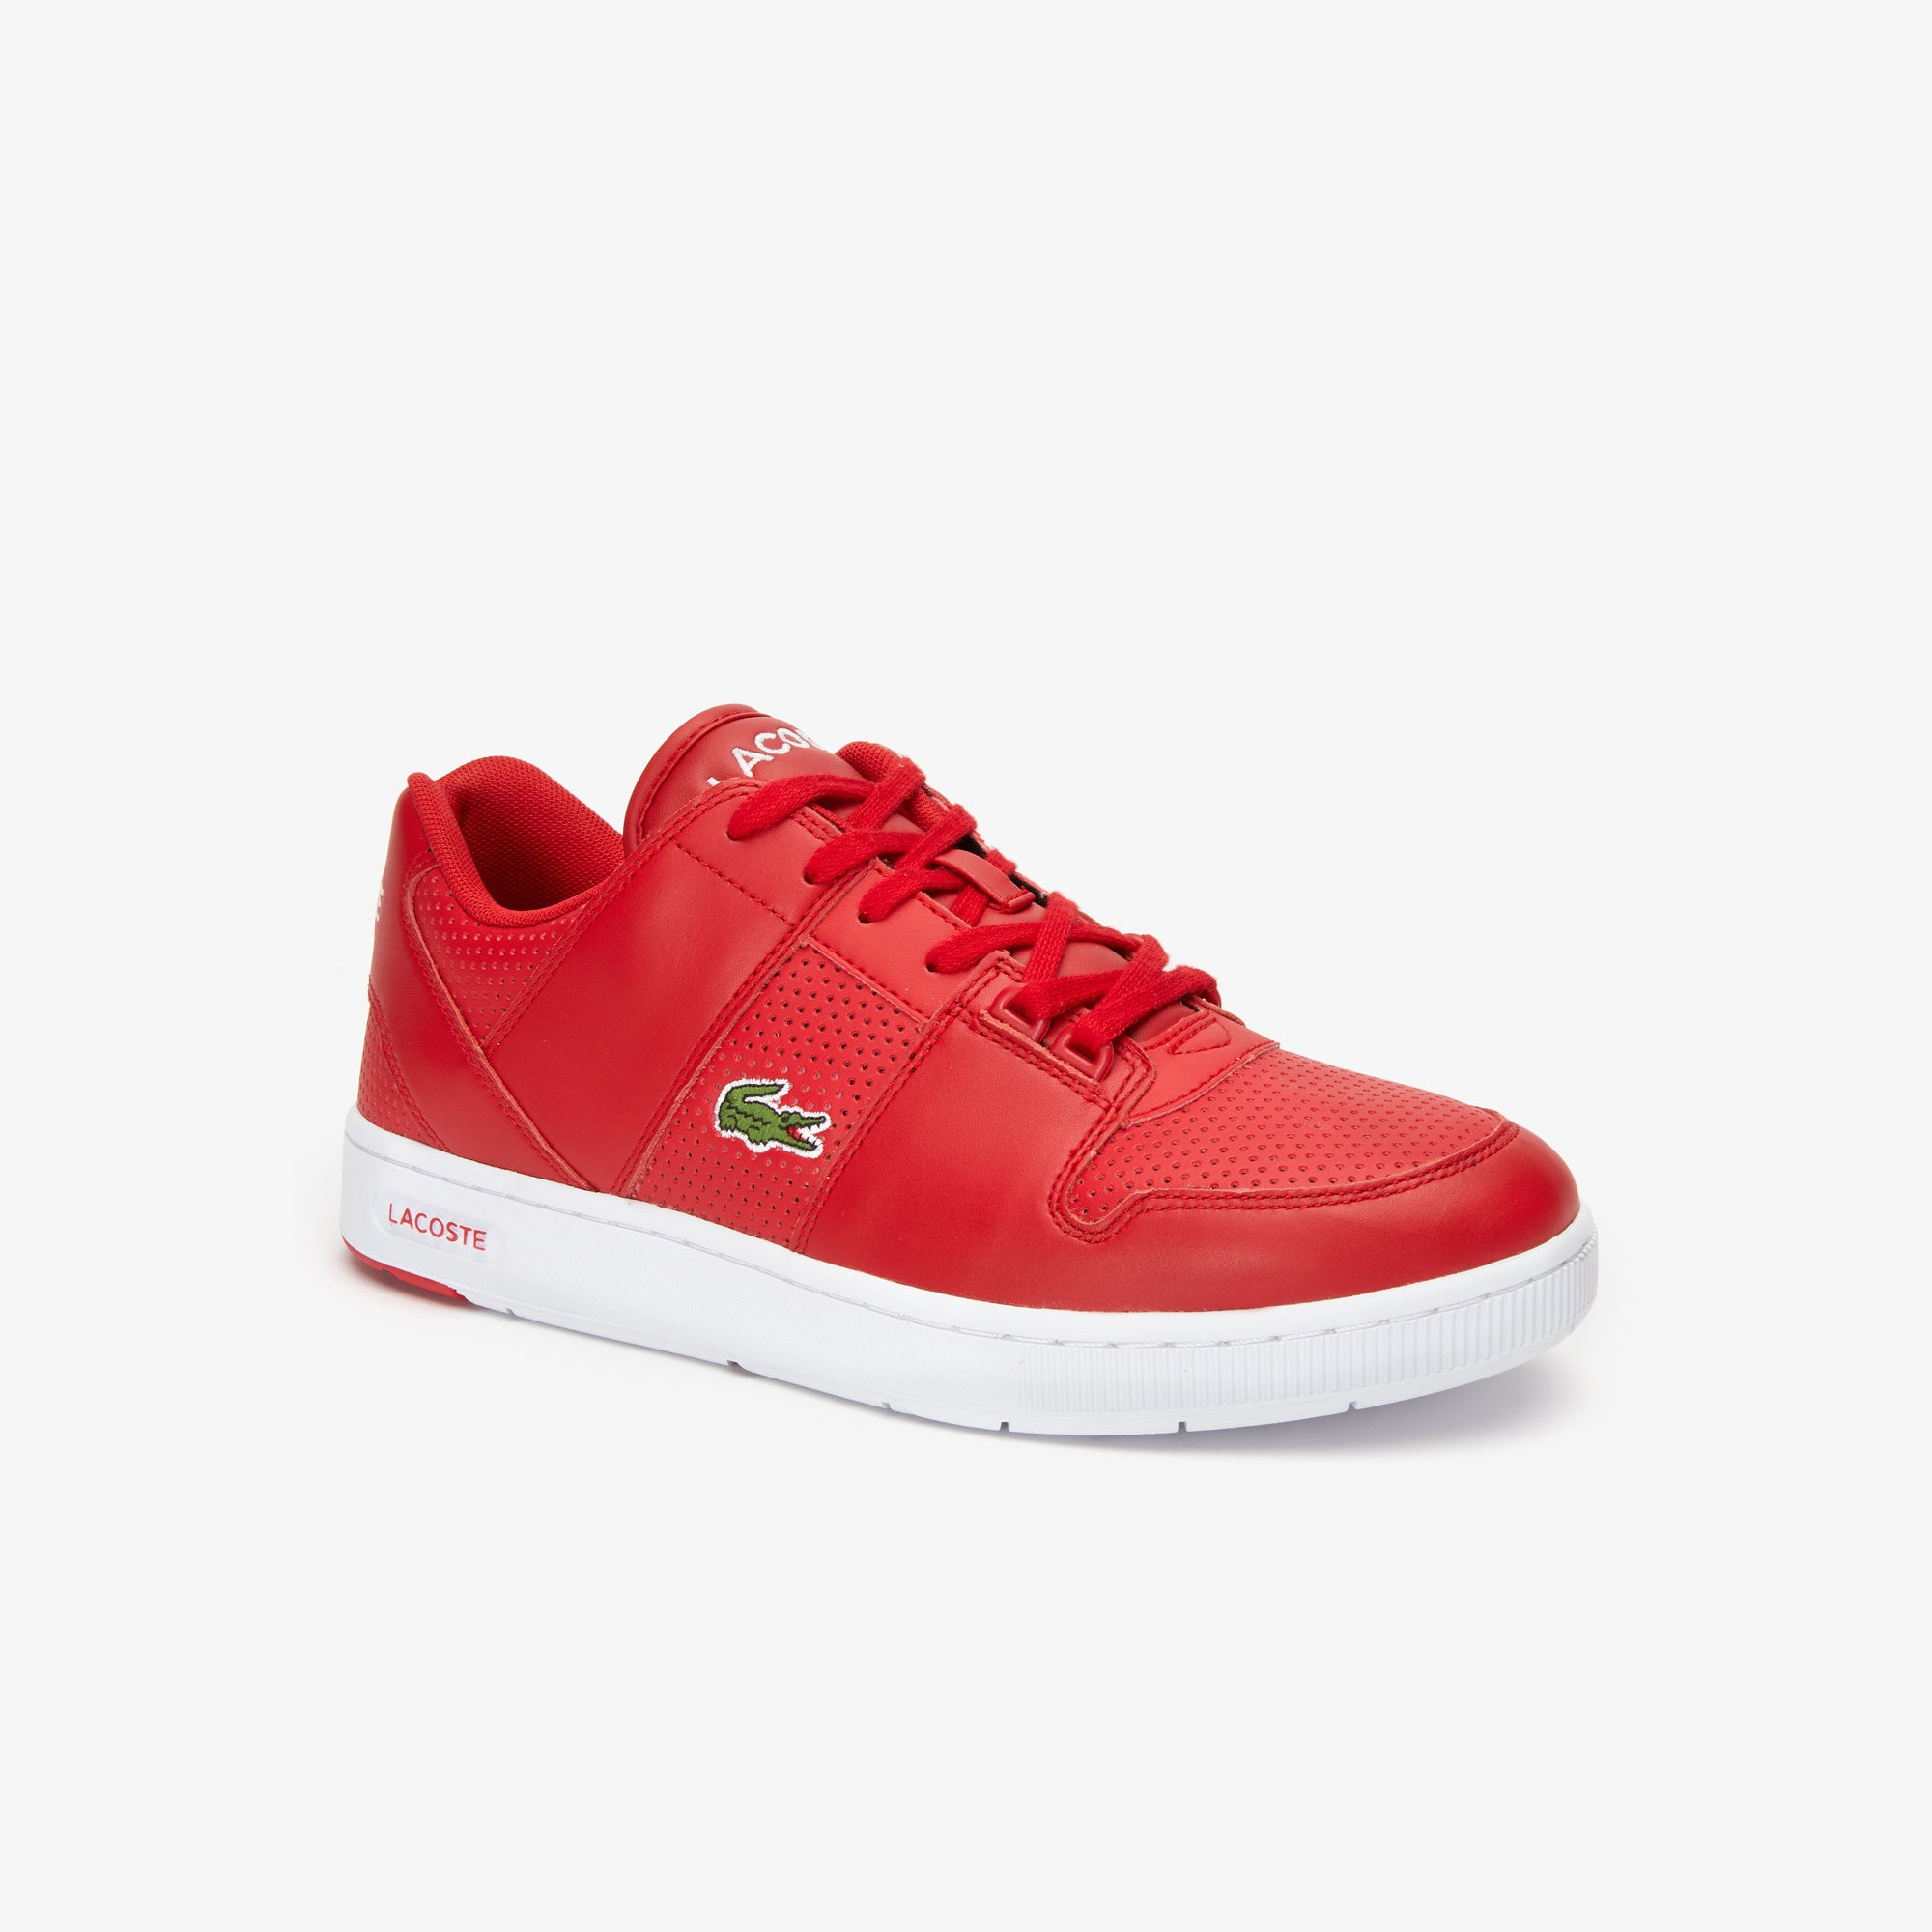 67e9b44a41191 Chaussures homme   Collection Homme   LACOSTE